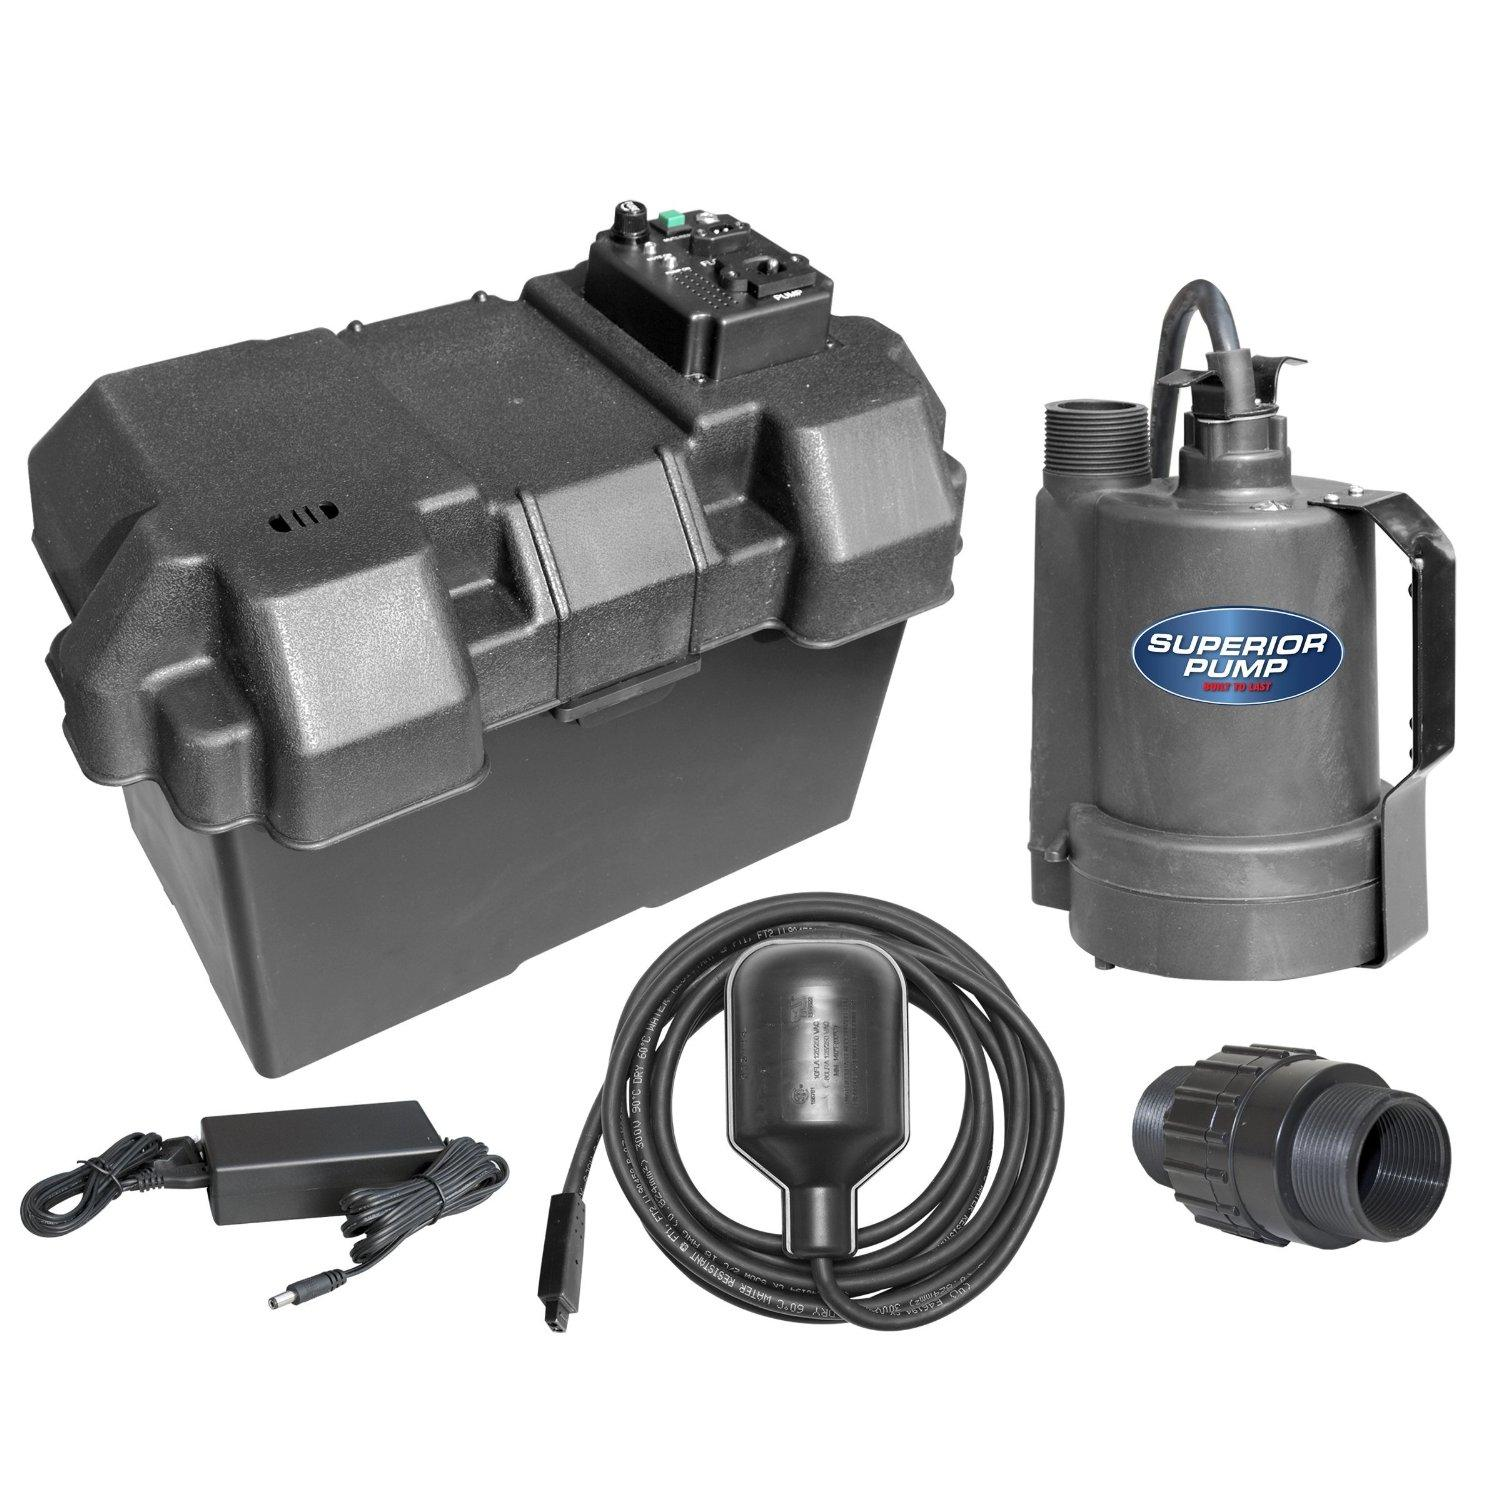 Superior Pump 92900 Powered Battery Back Up Sump Pump With ...